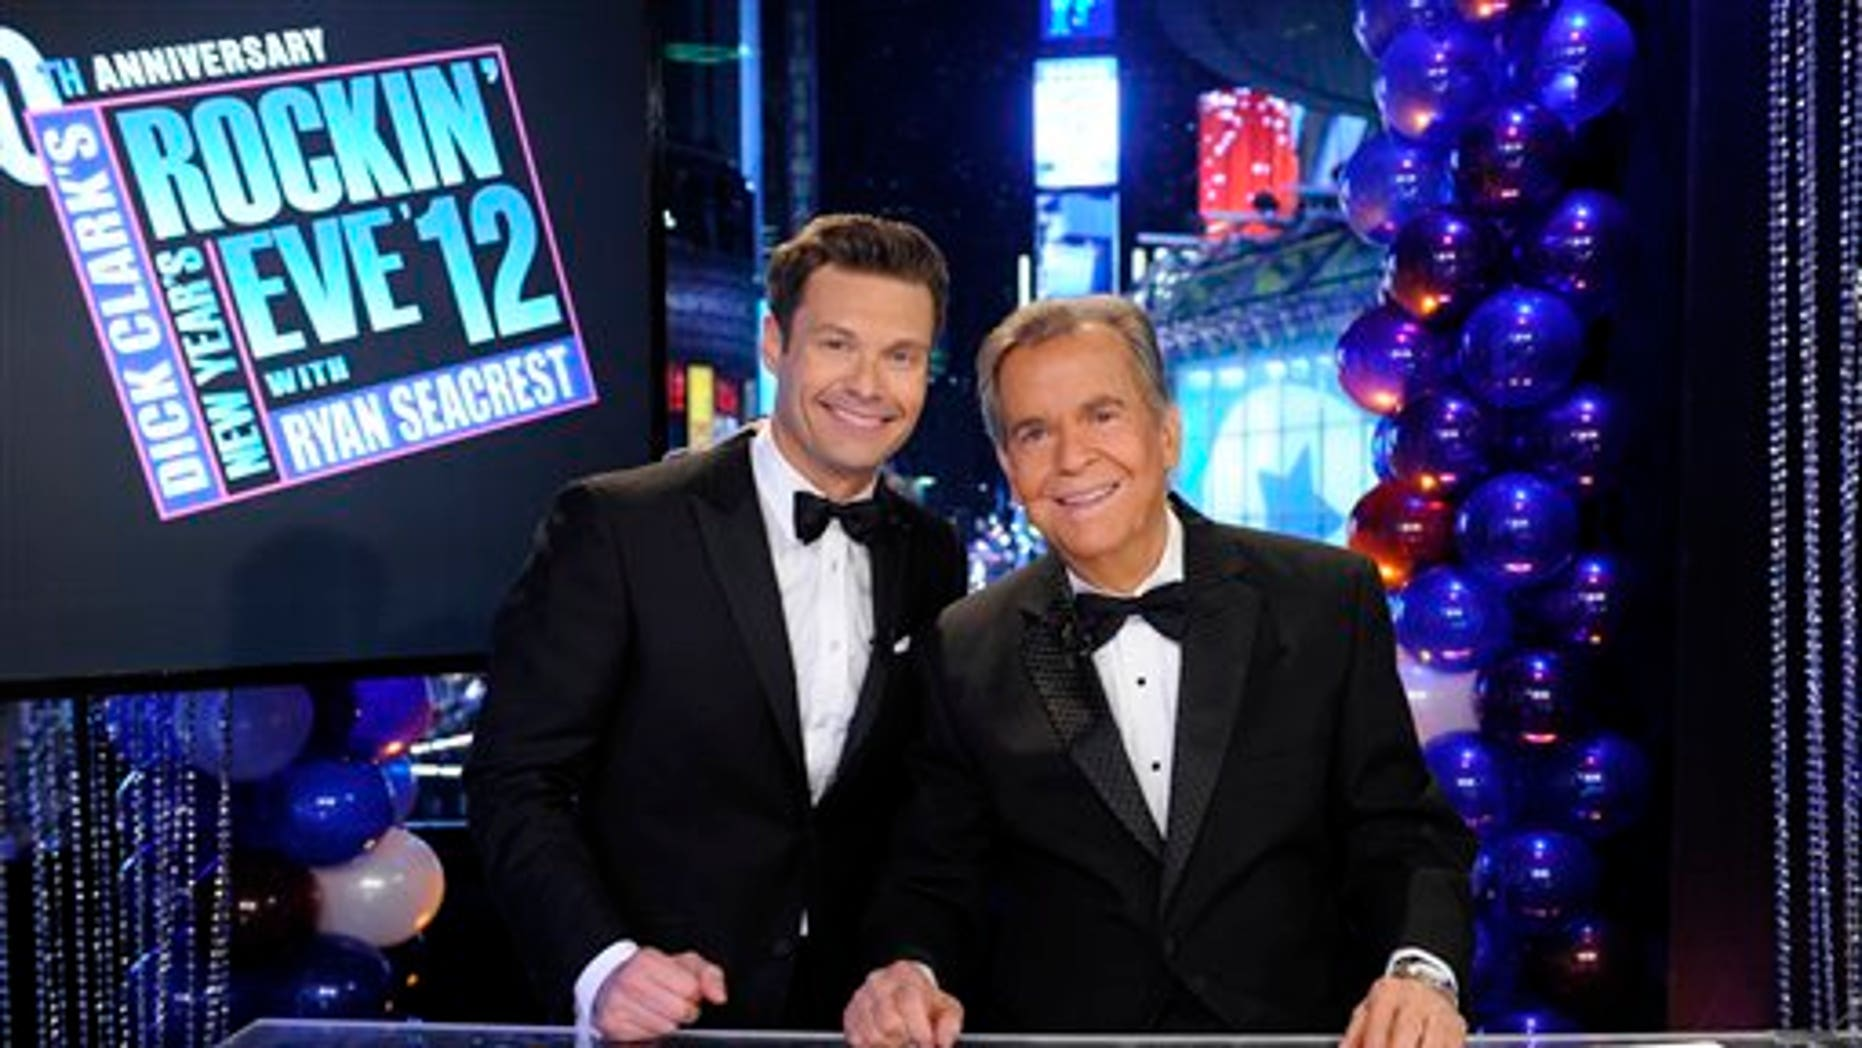 """In this Dec. 31, 2011 photo released by ABC, hosts Dick Clark, right, and Ryan Seacrest pose on the set of """"Dick Clark's New Year's Rockin' Eve with Ryan Seacrest 2012"""" in Times Square in New York.  (AP Photo/ABC, Ida Mae Astute)"""